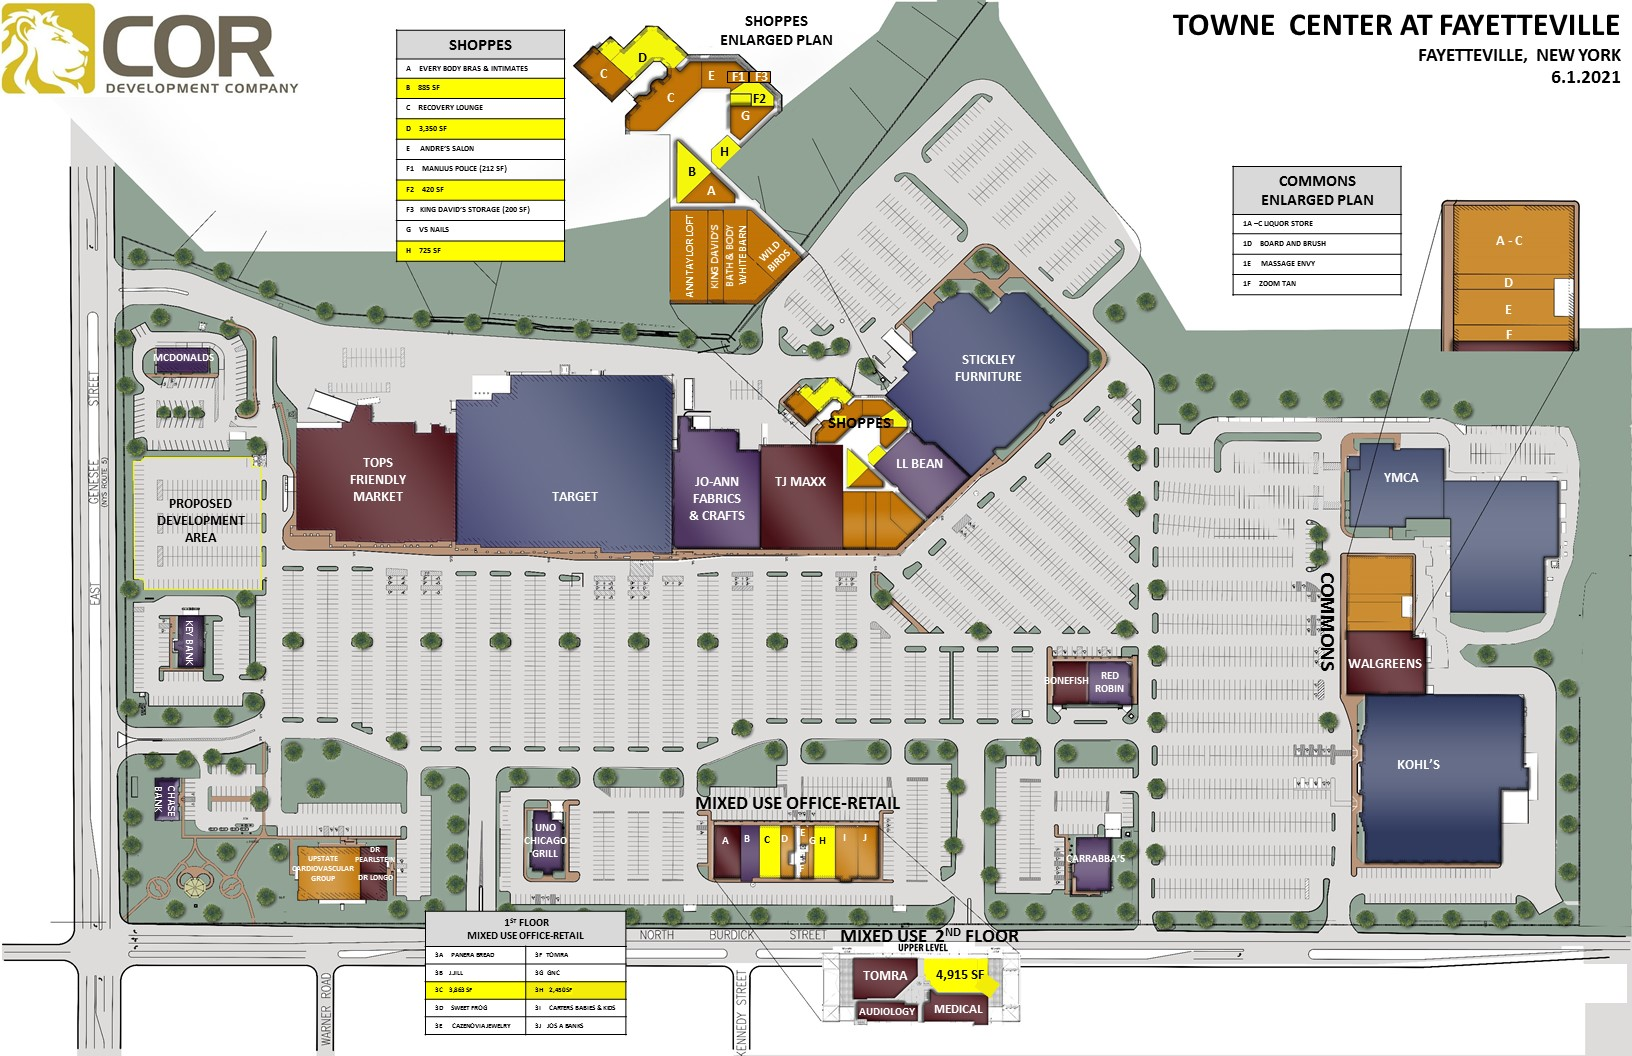 MASTER SITE PLAN Fayetteville 2021.06.01 - Towne Center at Fayetteville – Fayetteville, NY